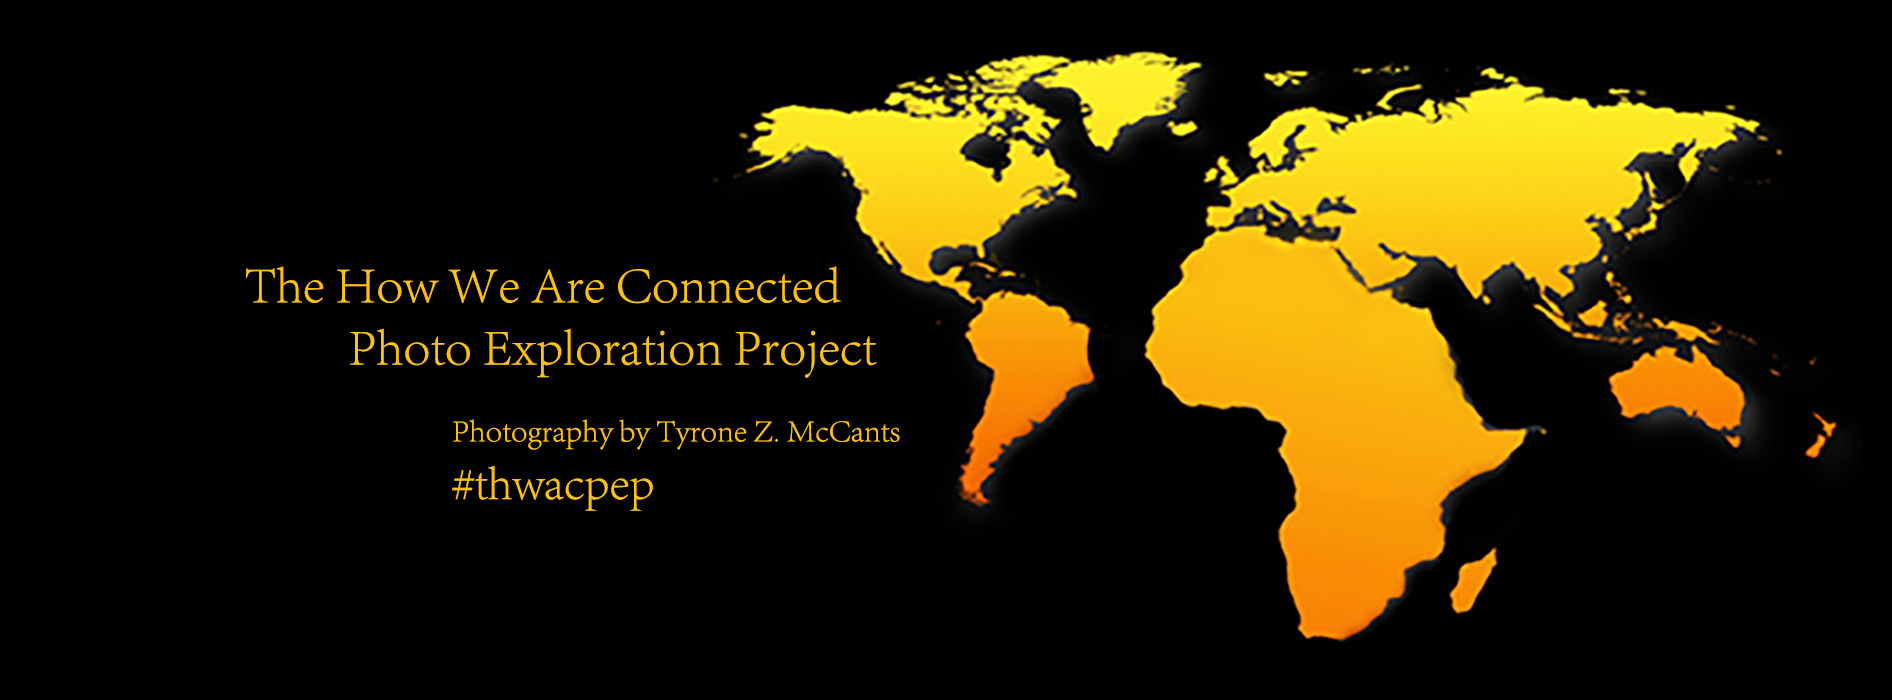 The THWACPEP Project